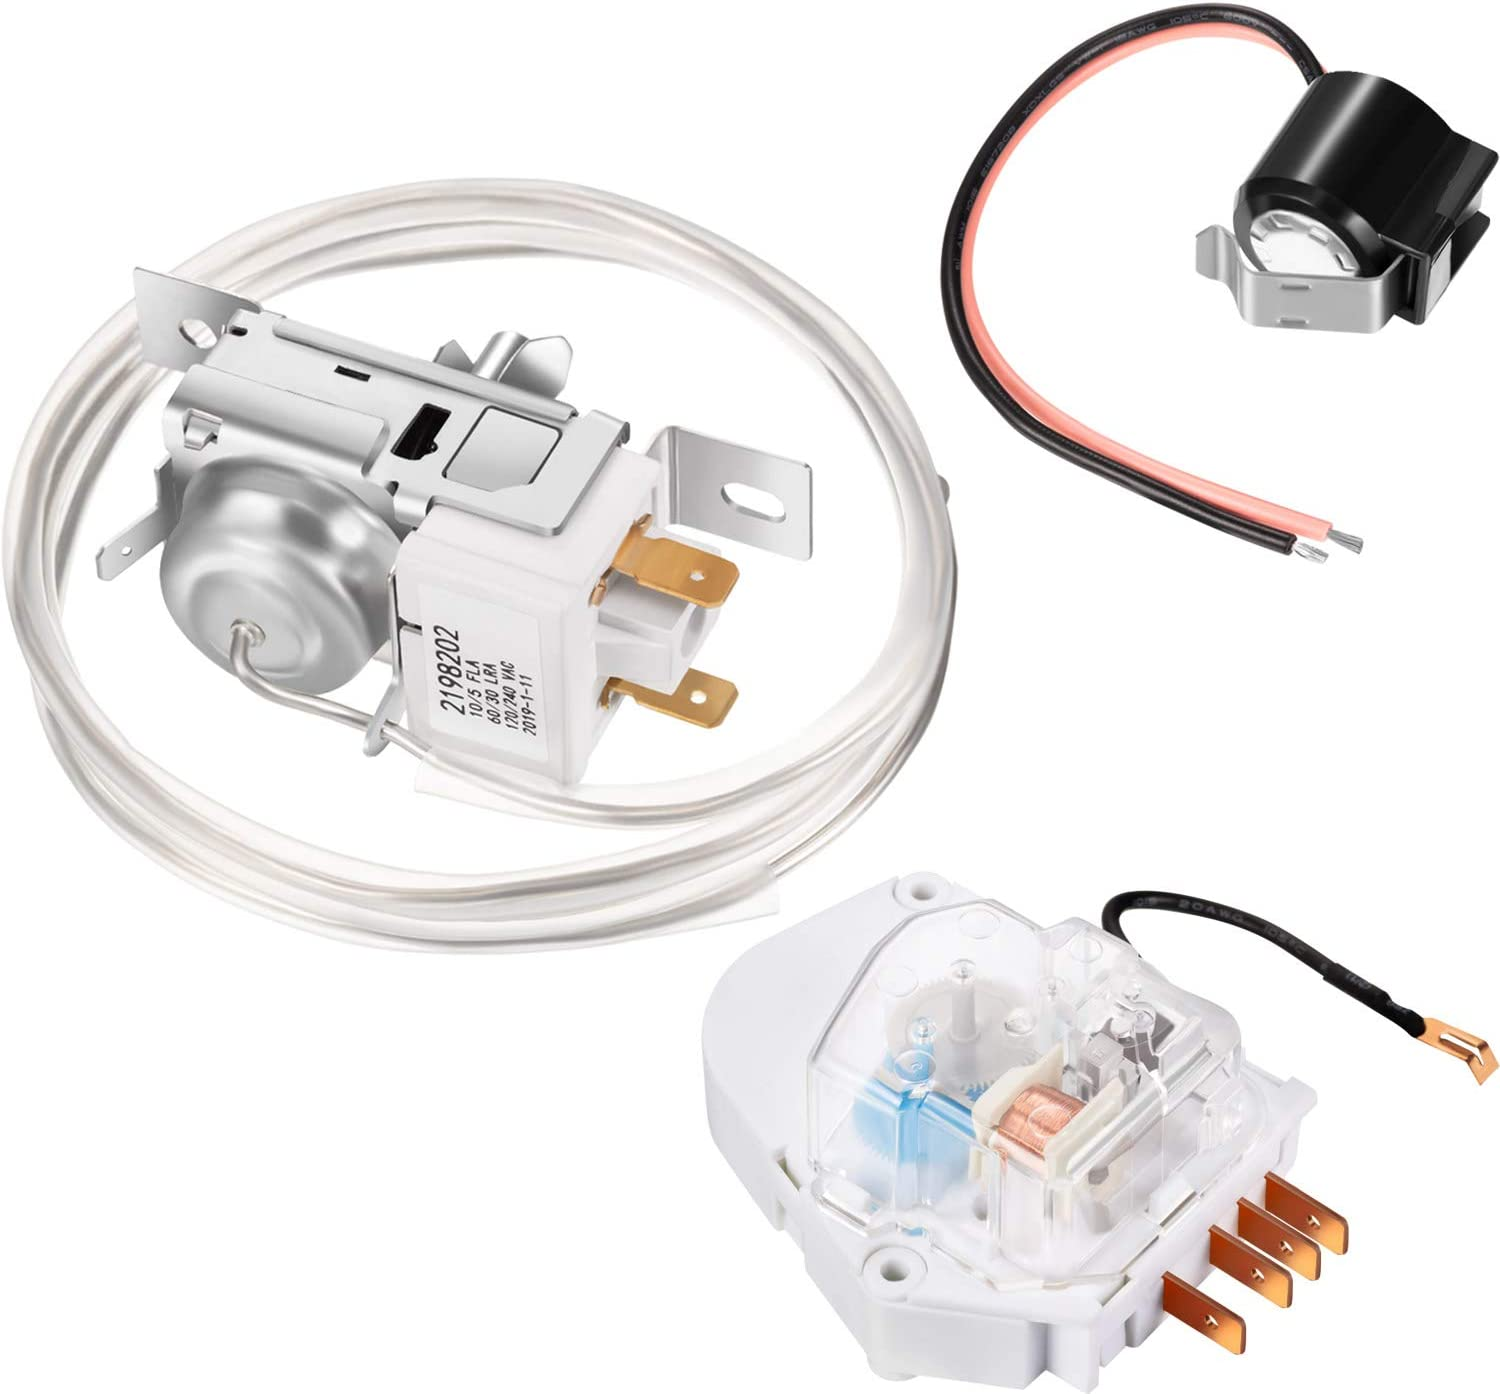 2198202 Refrigerator Cold Control Thermostat, W10822278 Refrigerator Defrost Timer and W10225581 Refrigerator Bimetal Defrost Thermostat, Refrigerator Defrost Kit Compatible with Kenmore